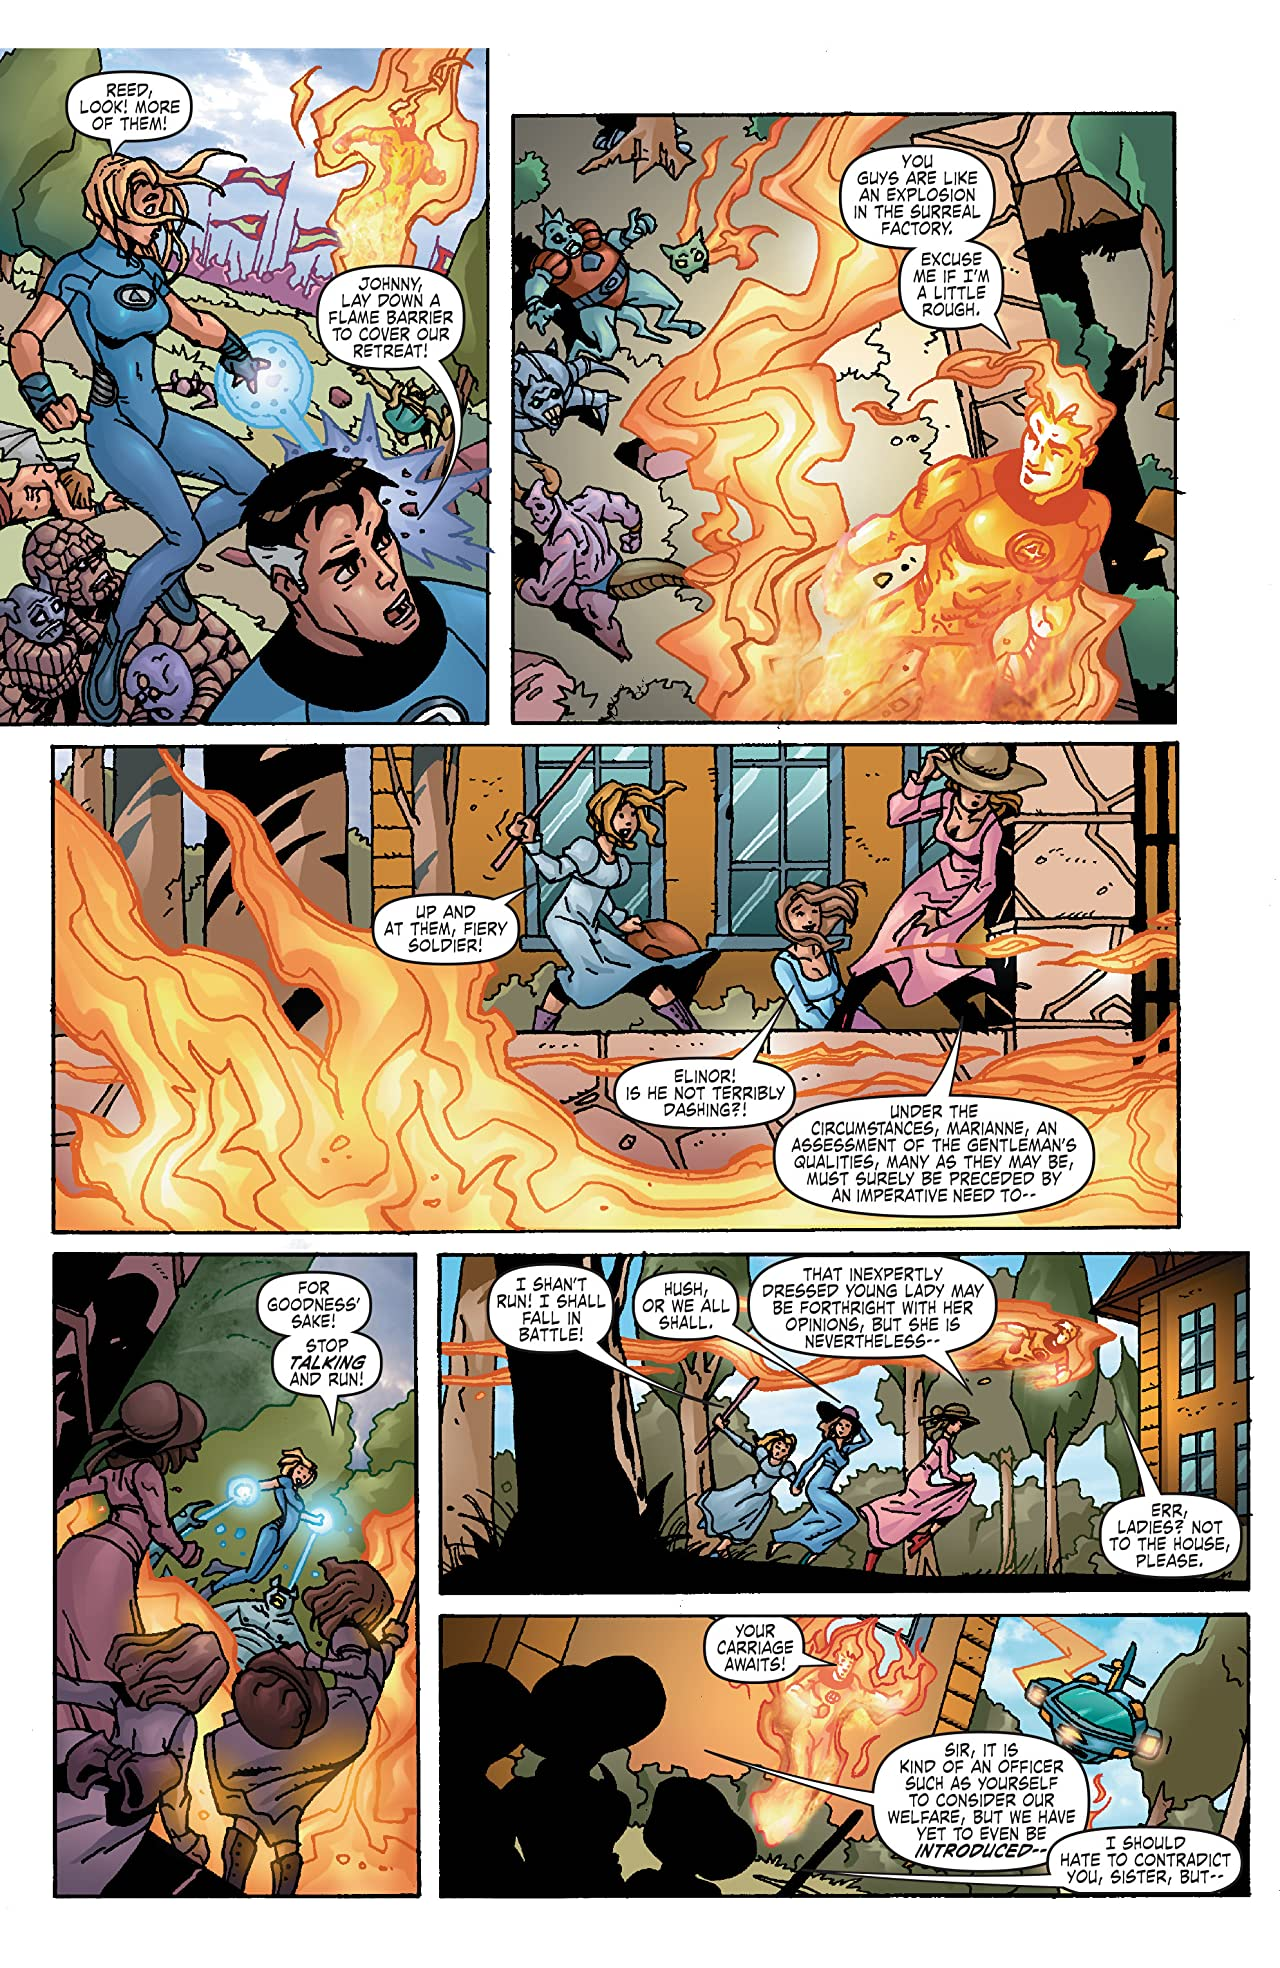 Fantastic Four: True Story (2008) #2 (of 4)